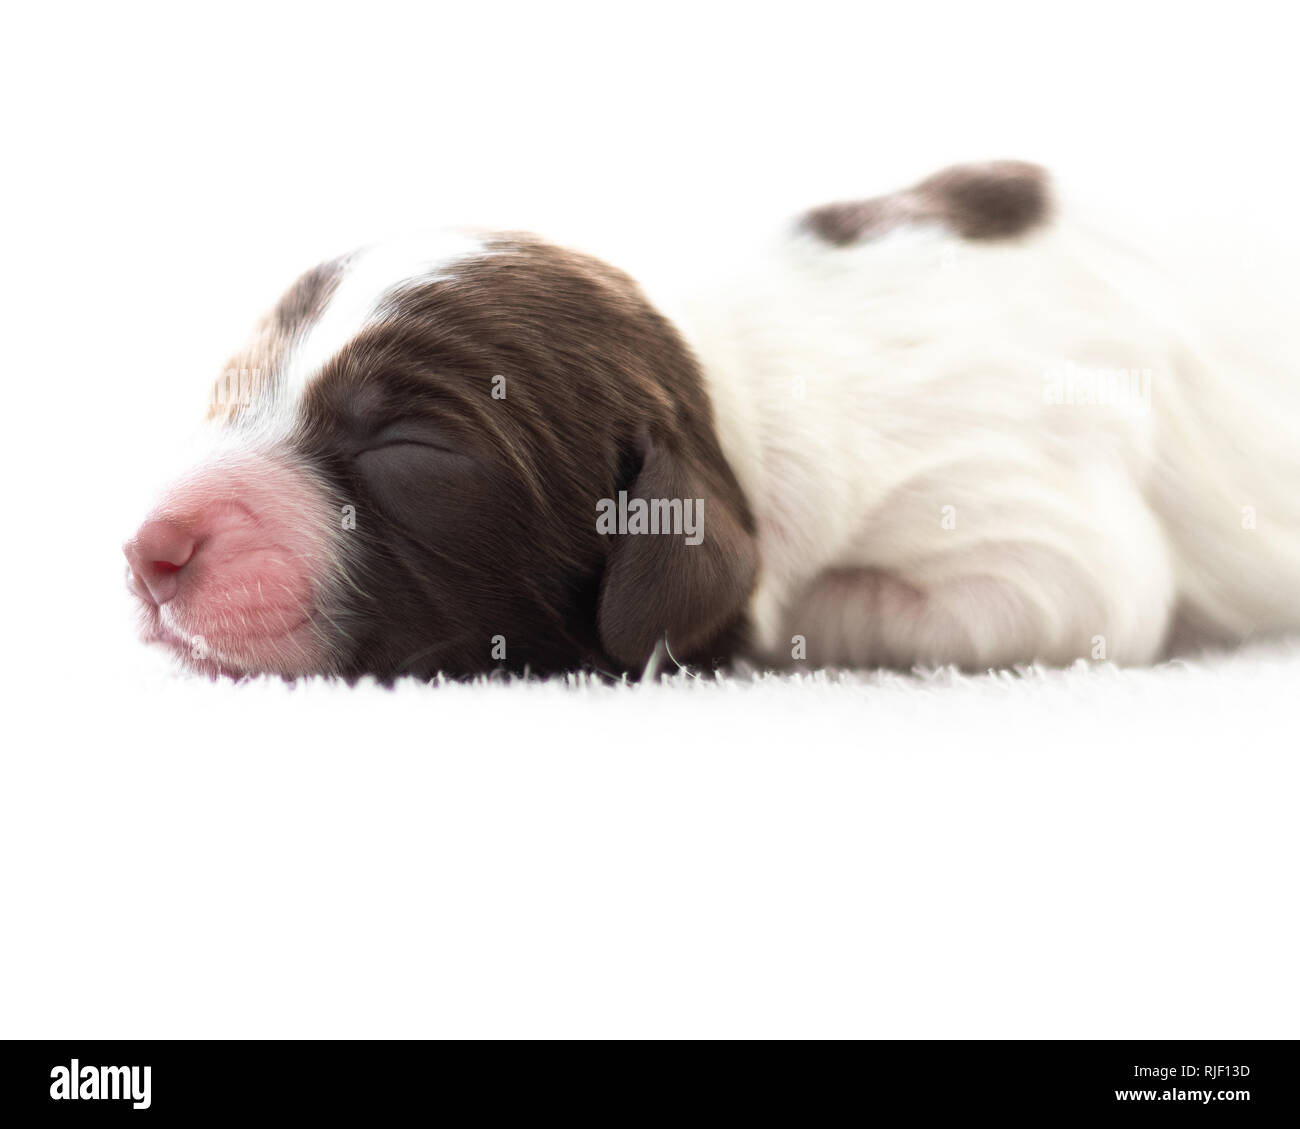 English Springer Spaniel Puppy - Stock Image